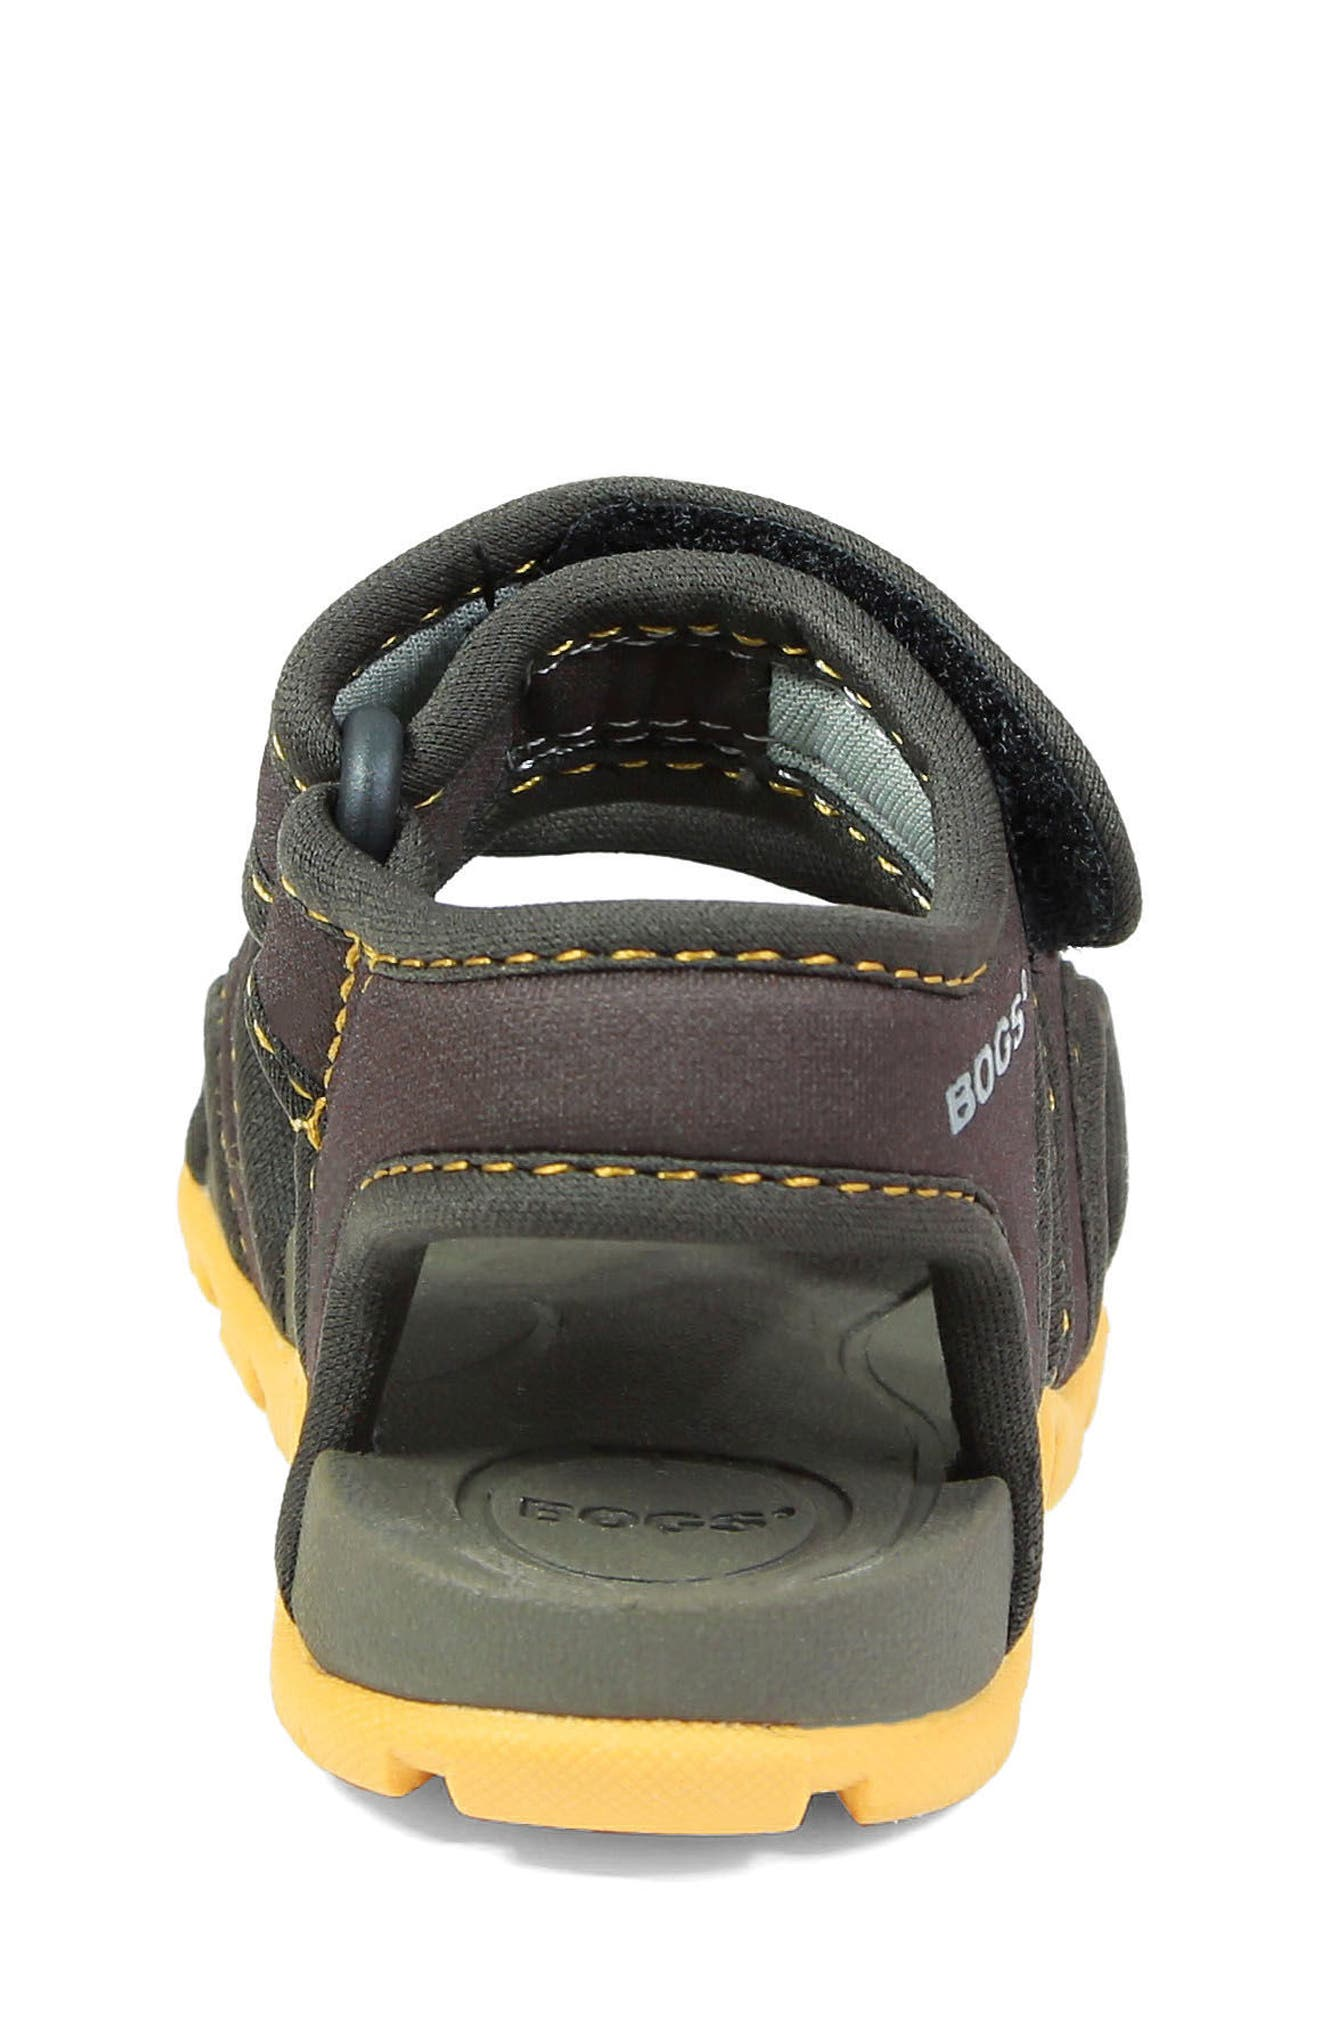 Whitefish Waterproof Sandal,                             Alternate thumbnail 8, color,                             OLIVE MULTI